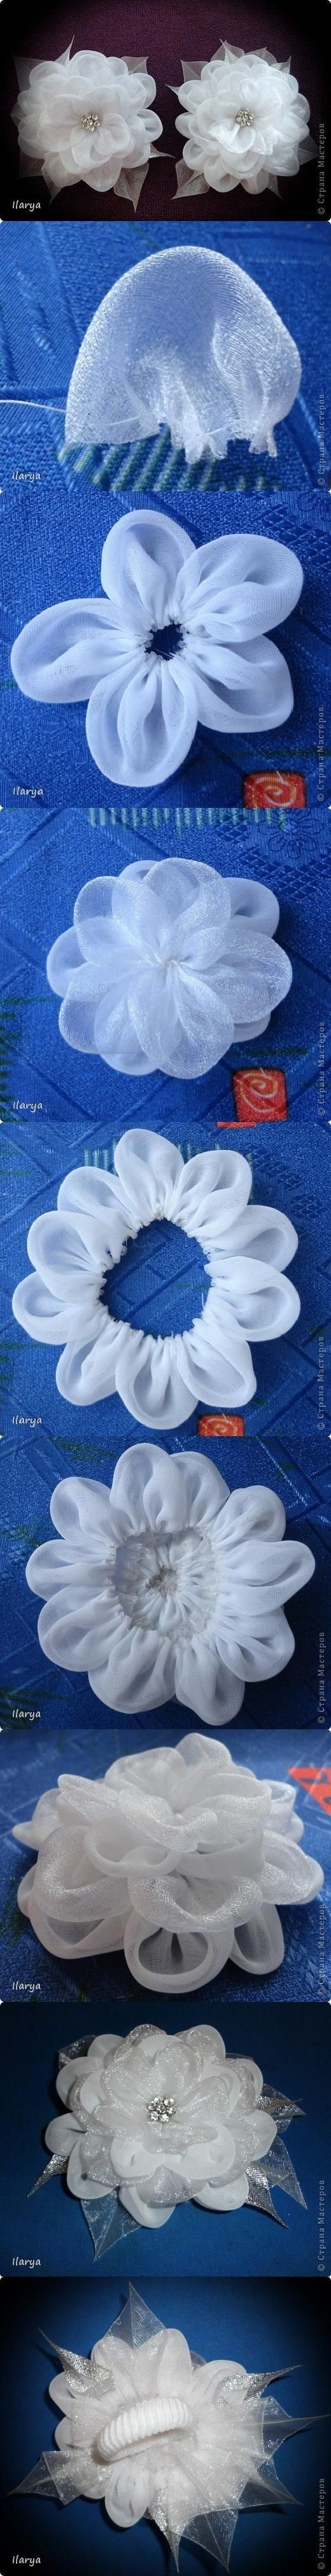 Fabric flower tutorial- sheer beauty